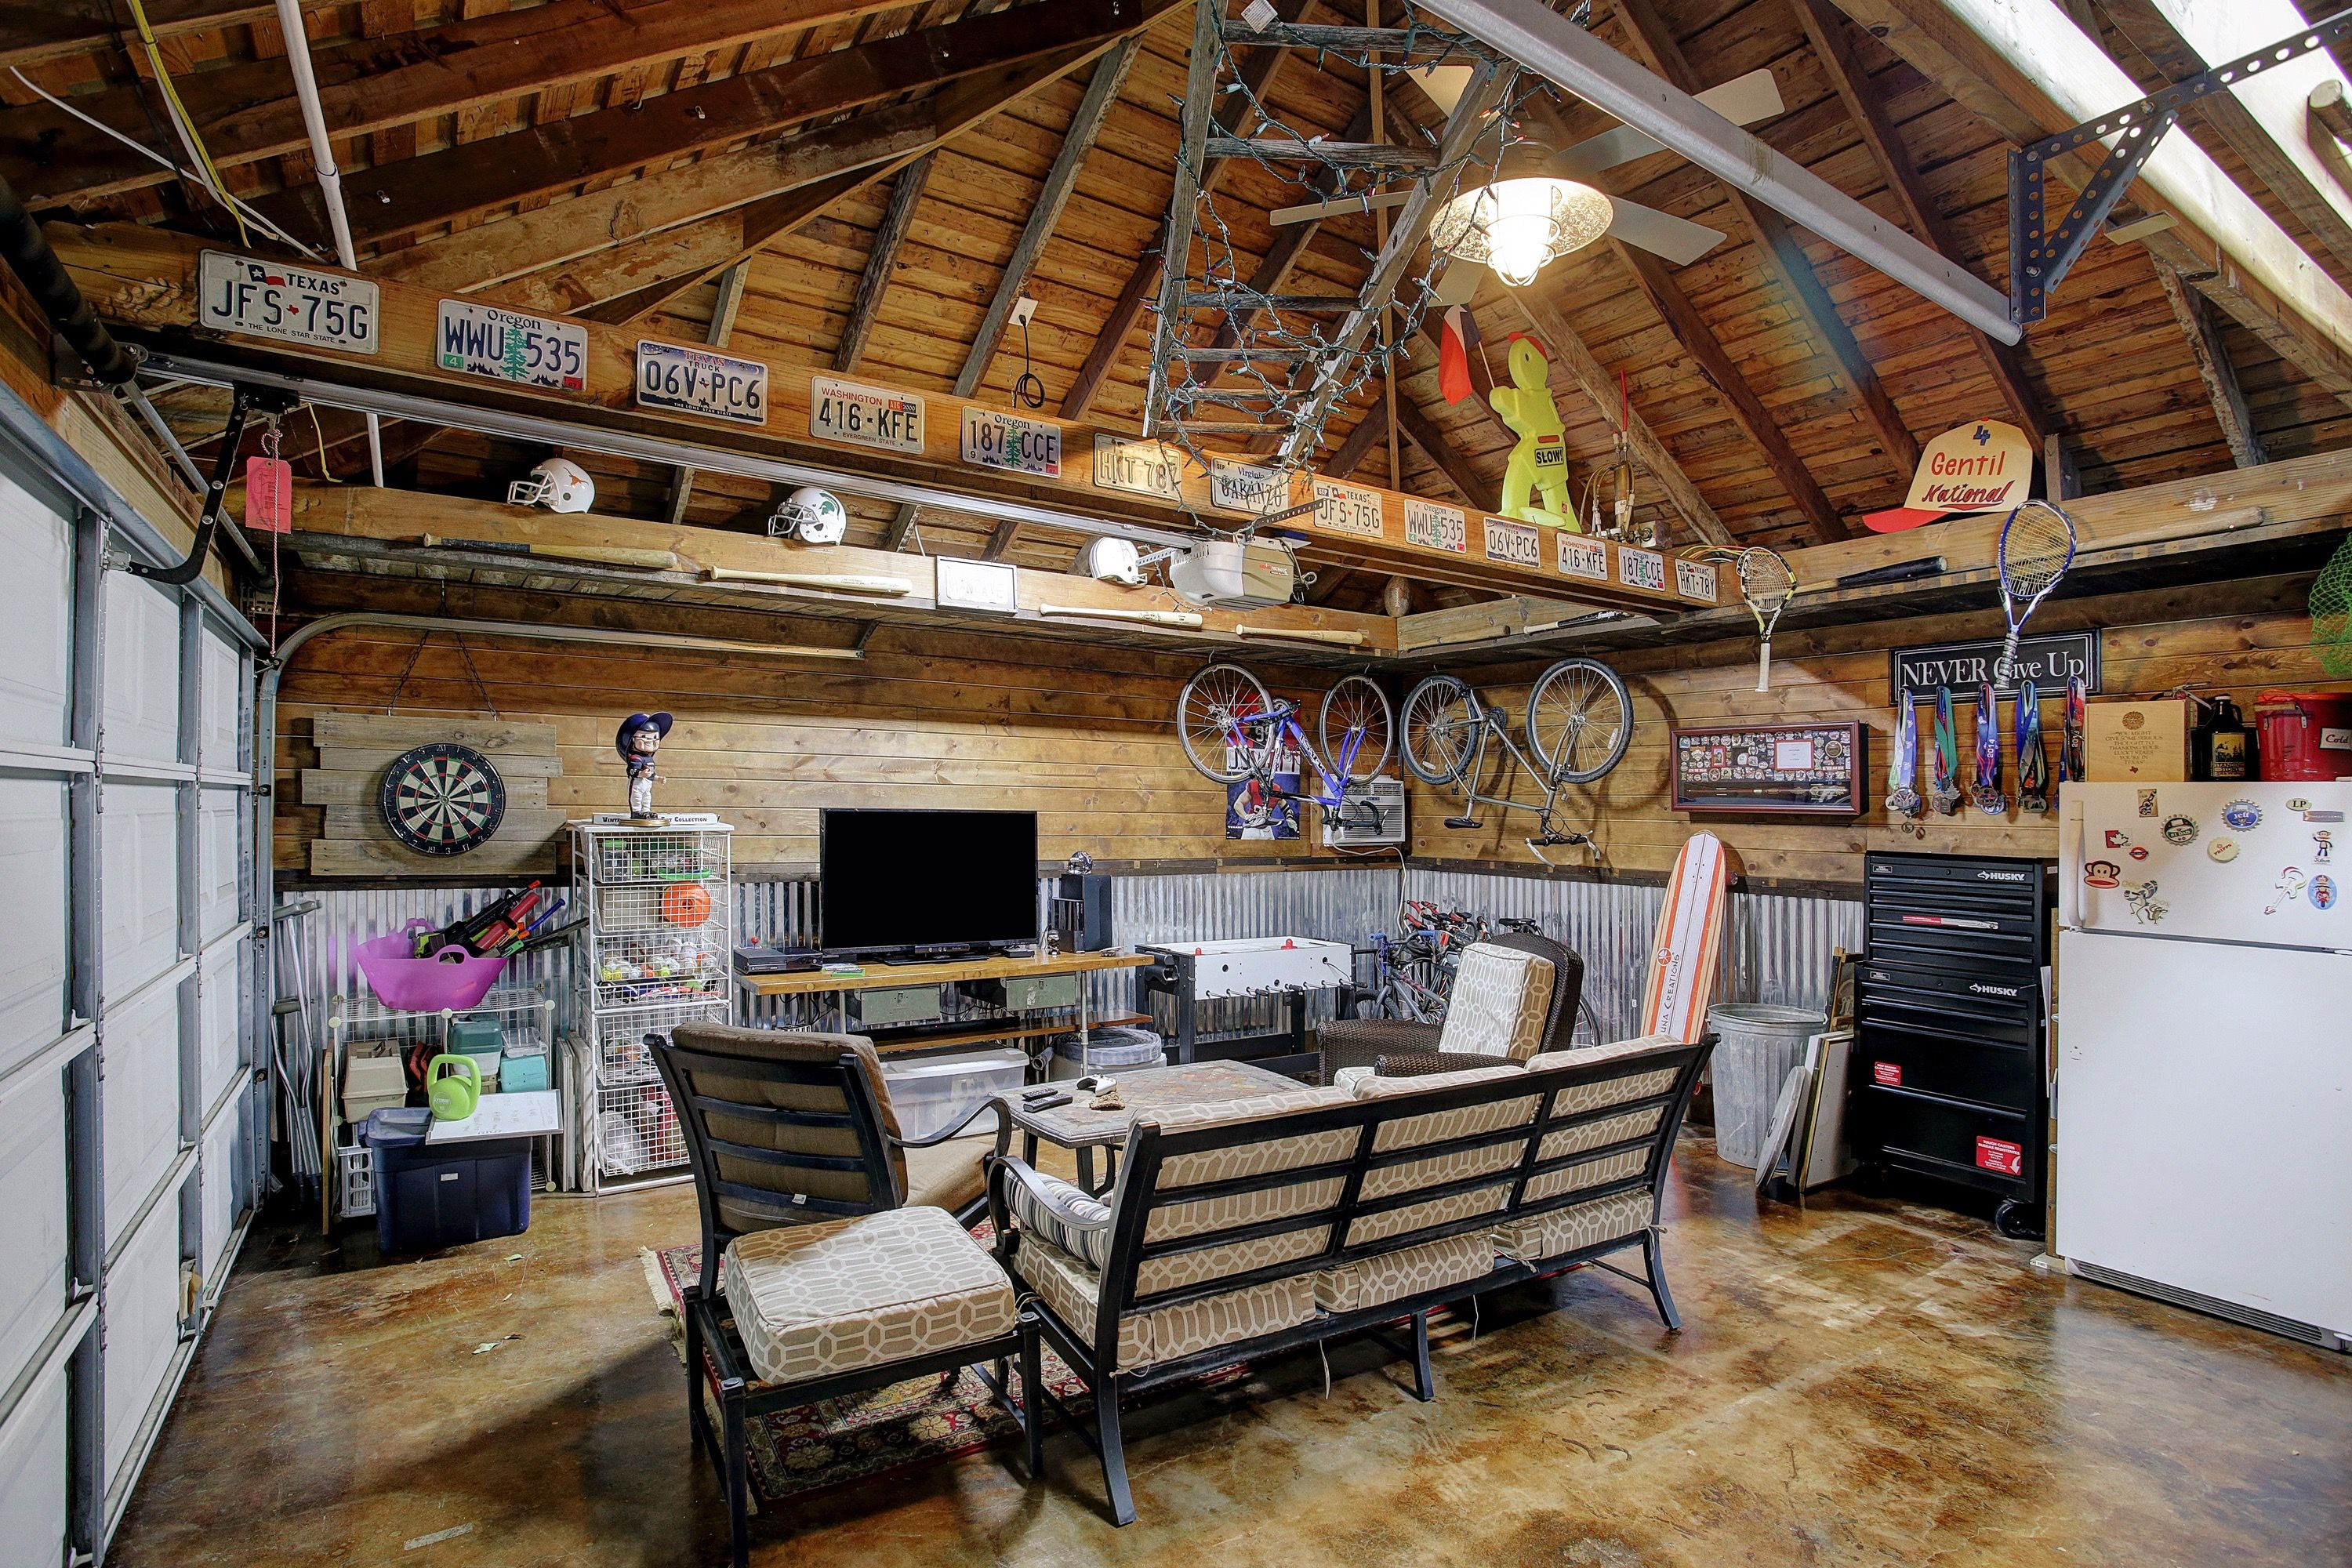 Outdoor garage remodel - man cave | Outdoor Living in 2019 ... on Man Cave Patio Ideas  id=83700